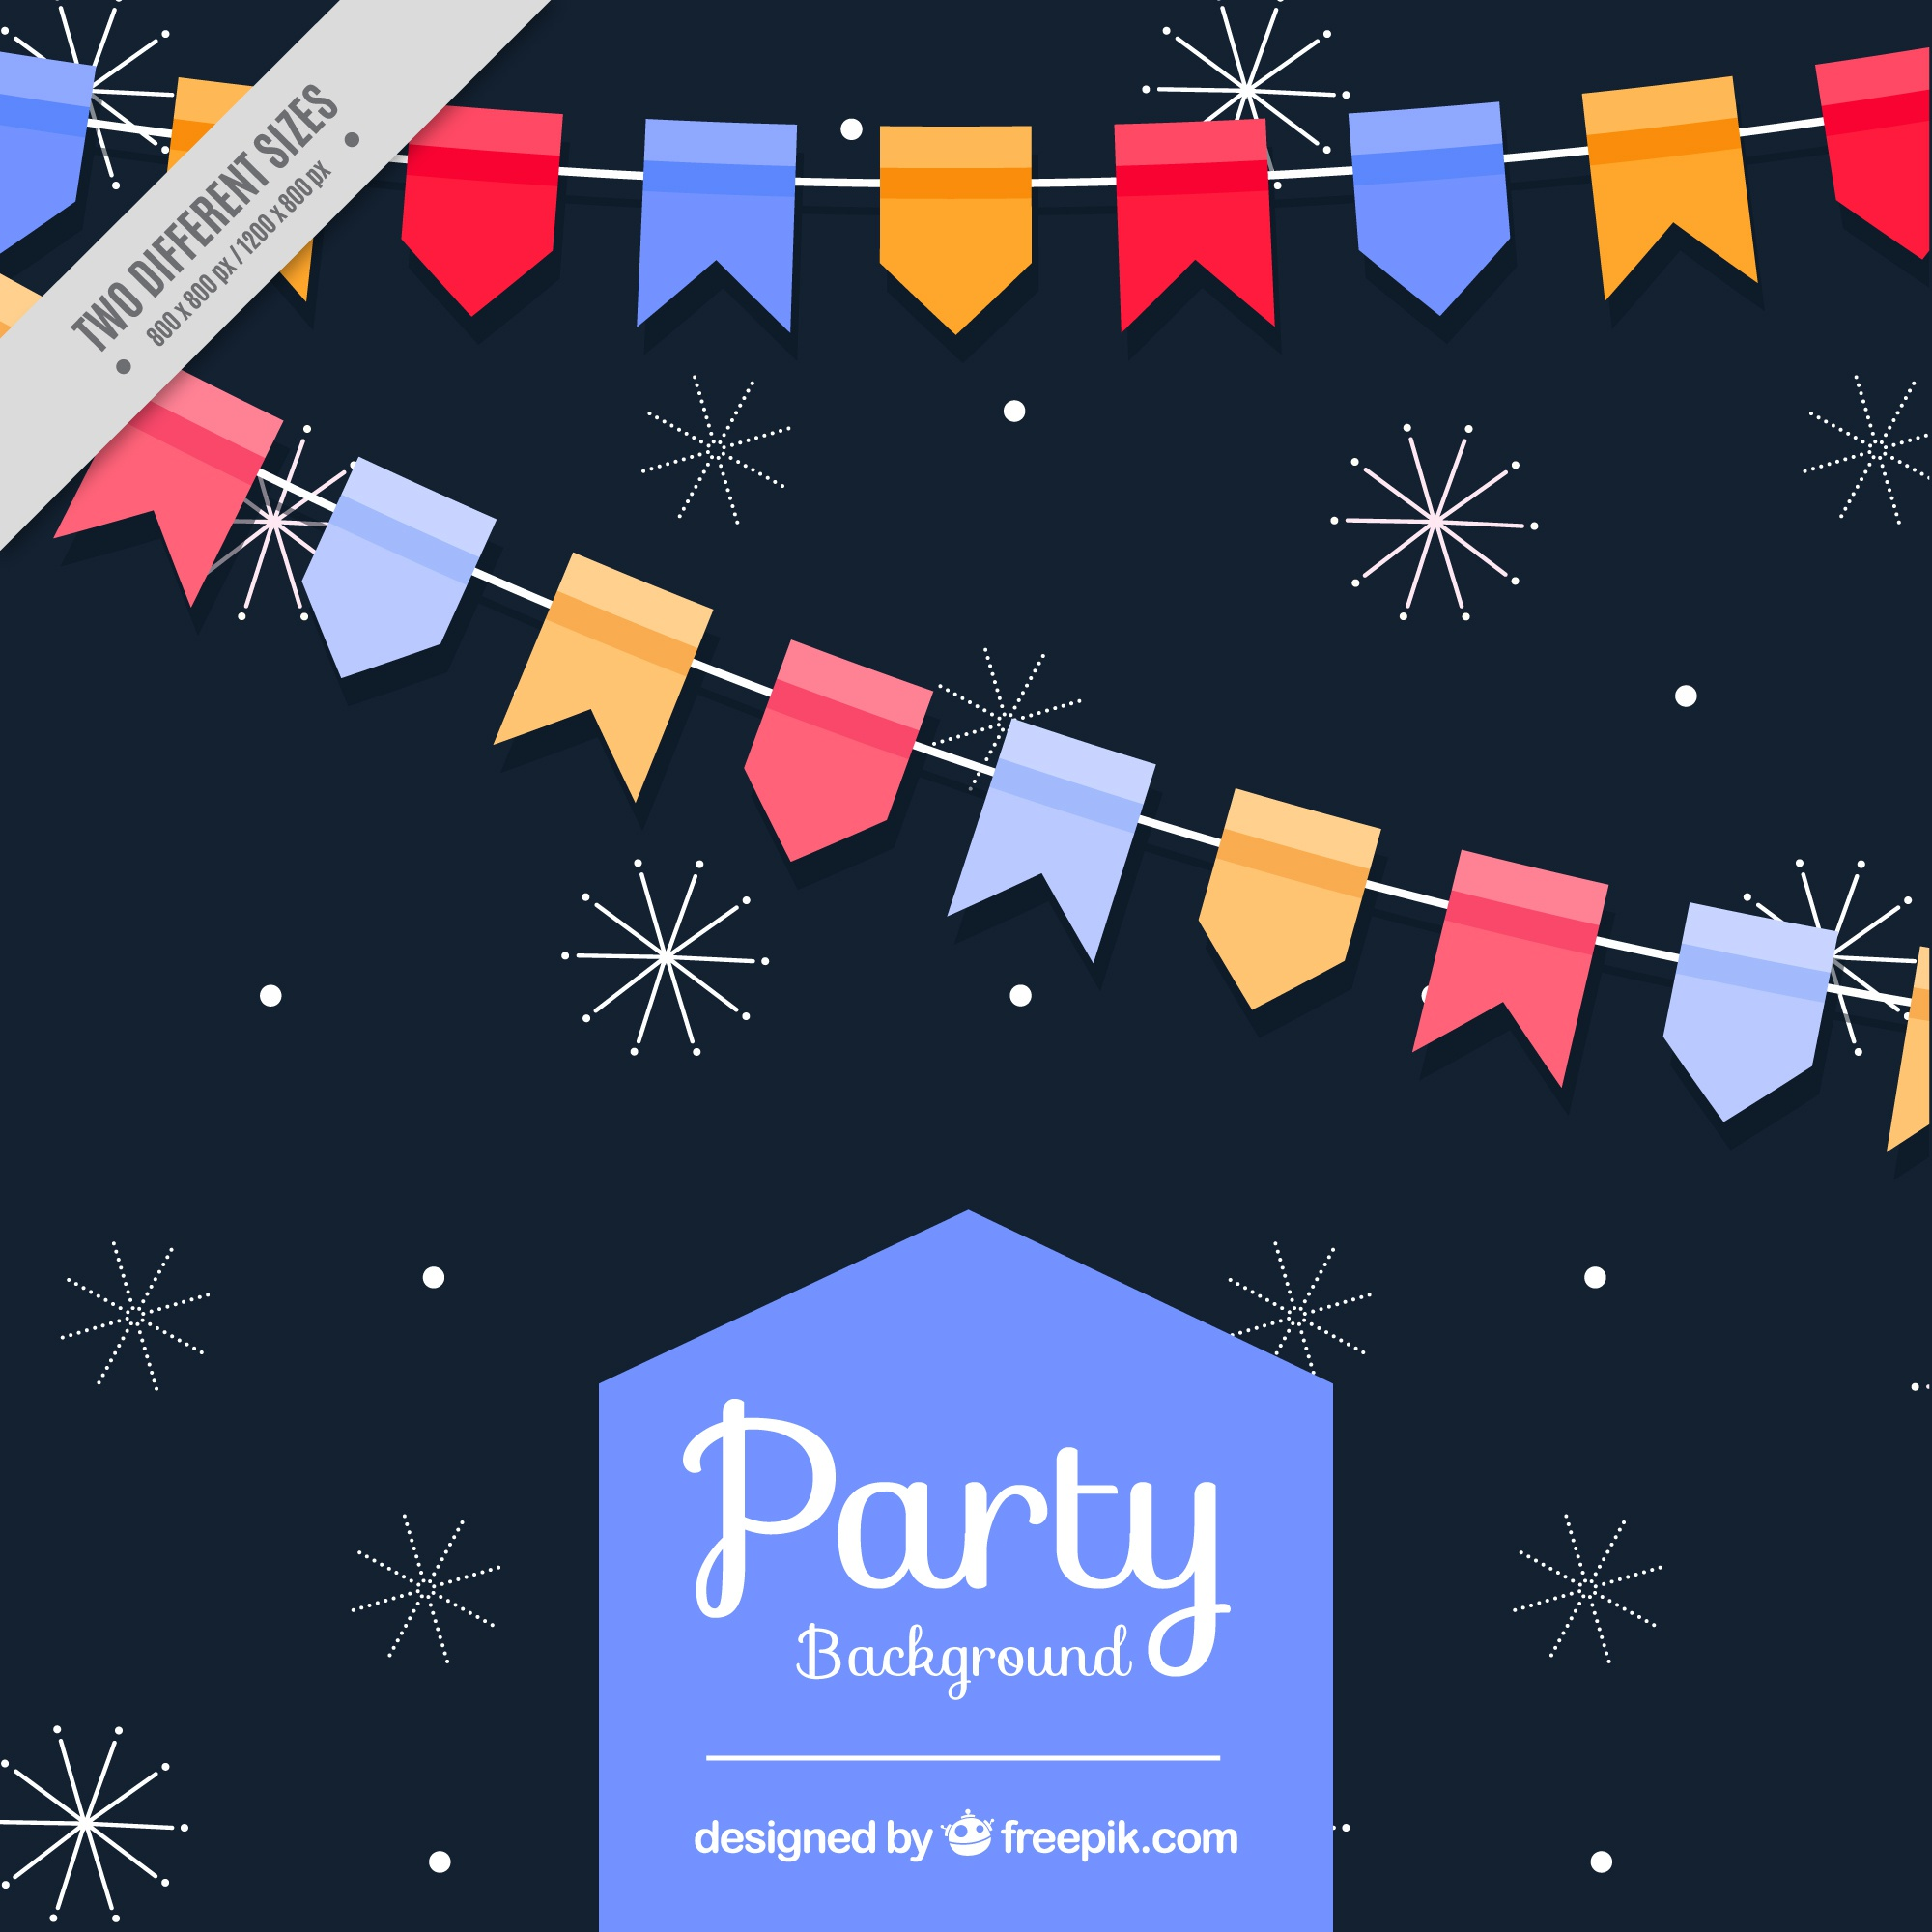 Dark party background with stars and garlands